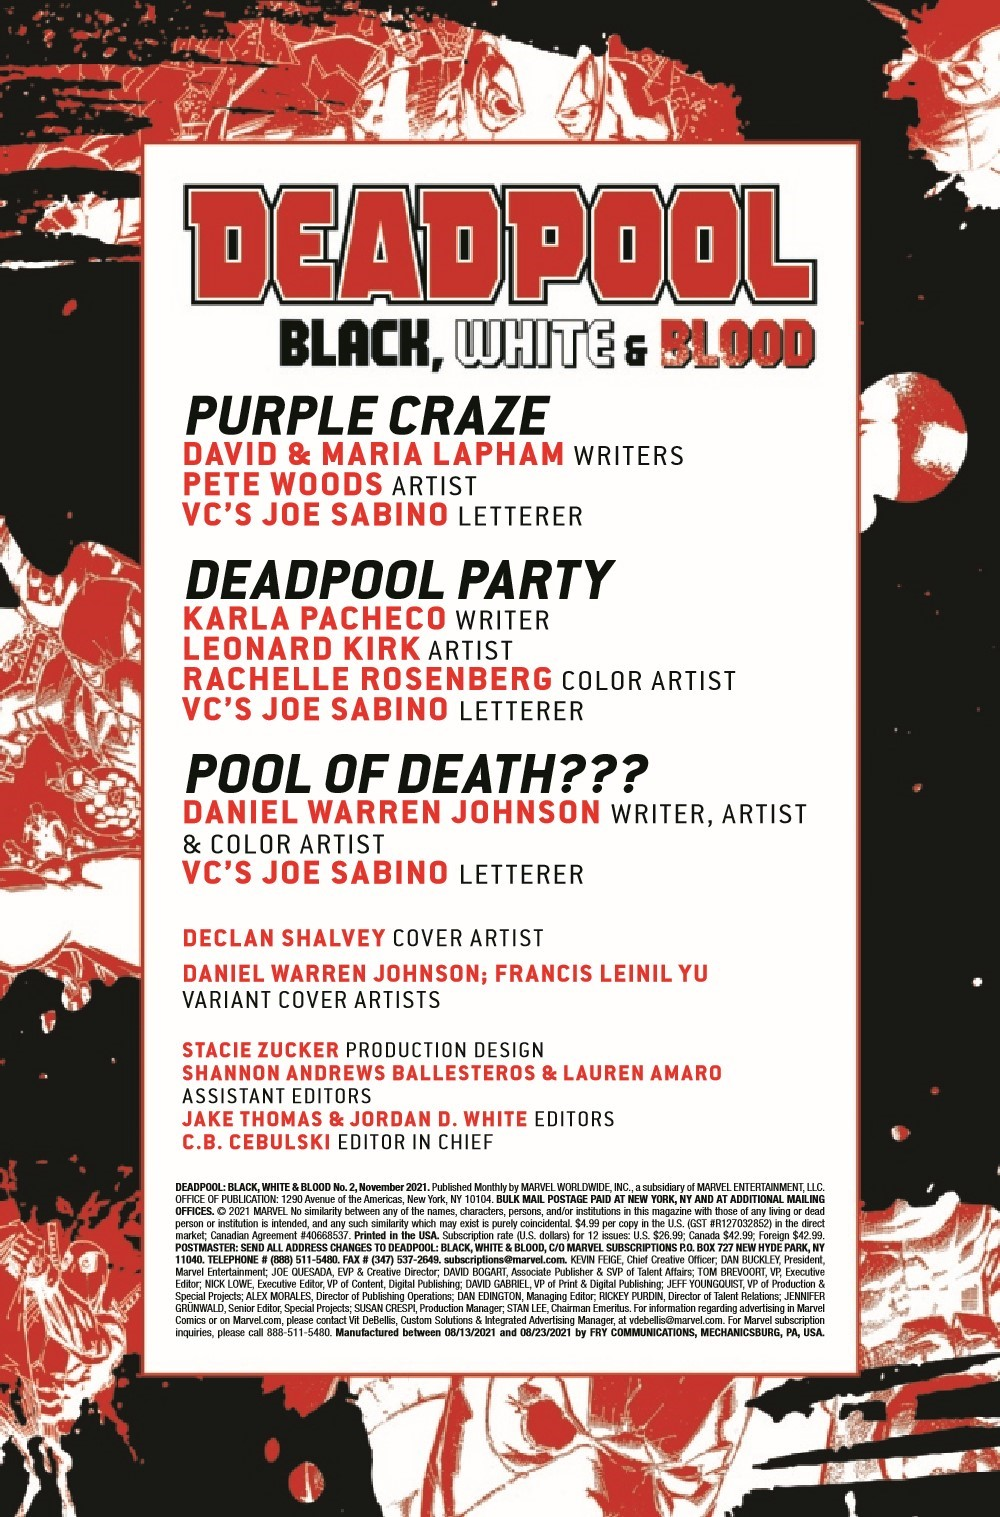 DPOOLBLKWHBL2021002_Preview-2 ComicList Previews: DEADPOOL BLACK WHITE AND BLOOD #2 (OF 4)